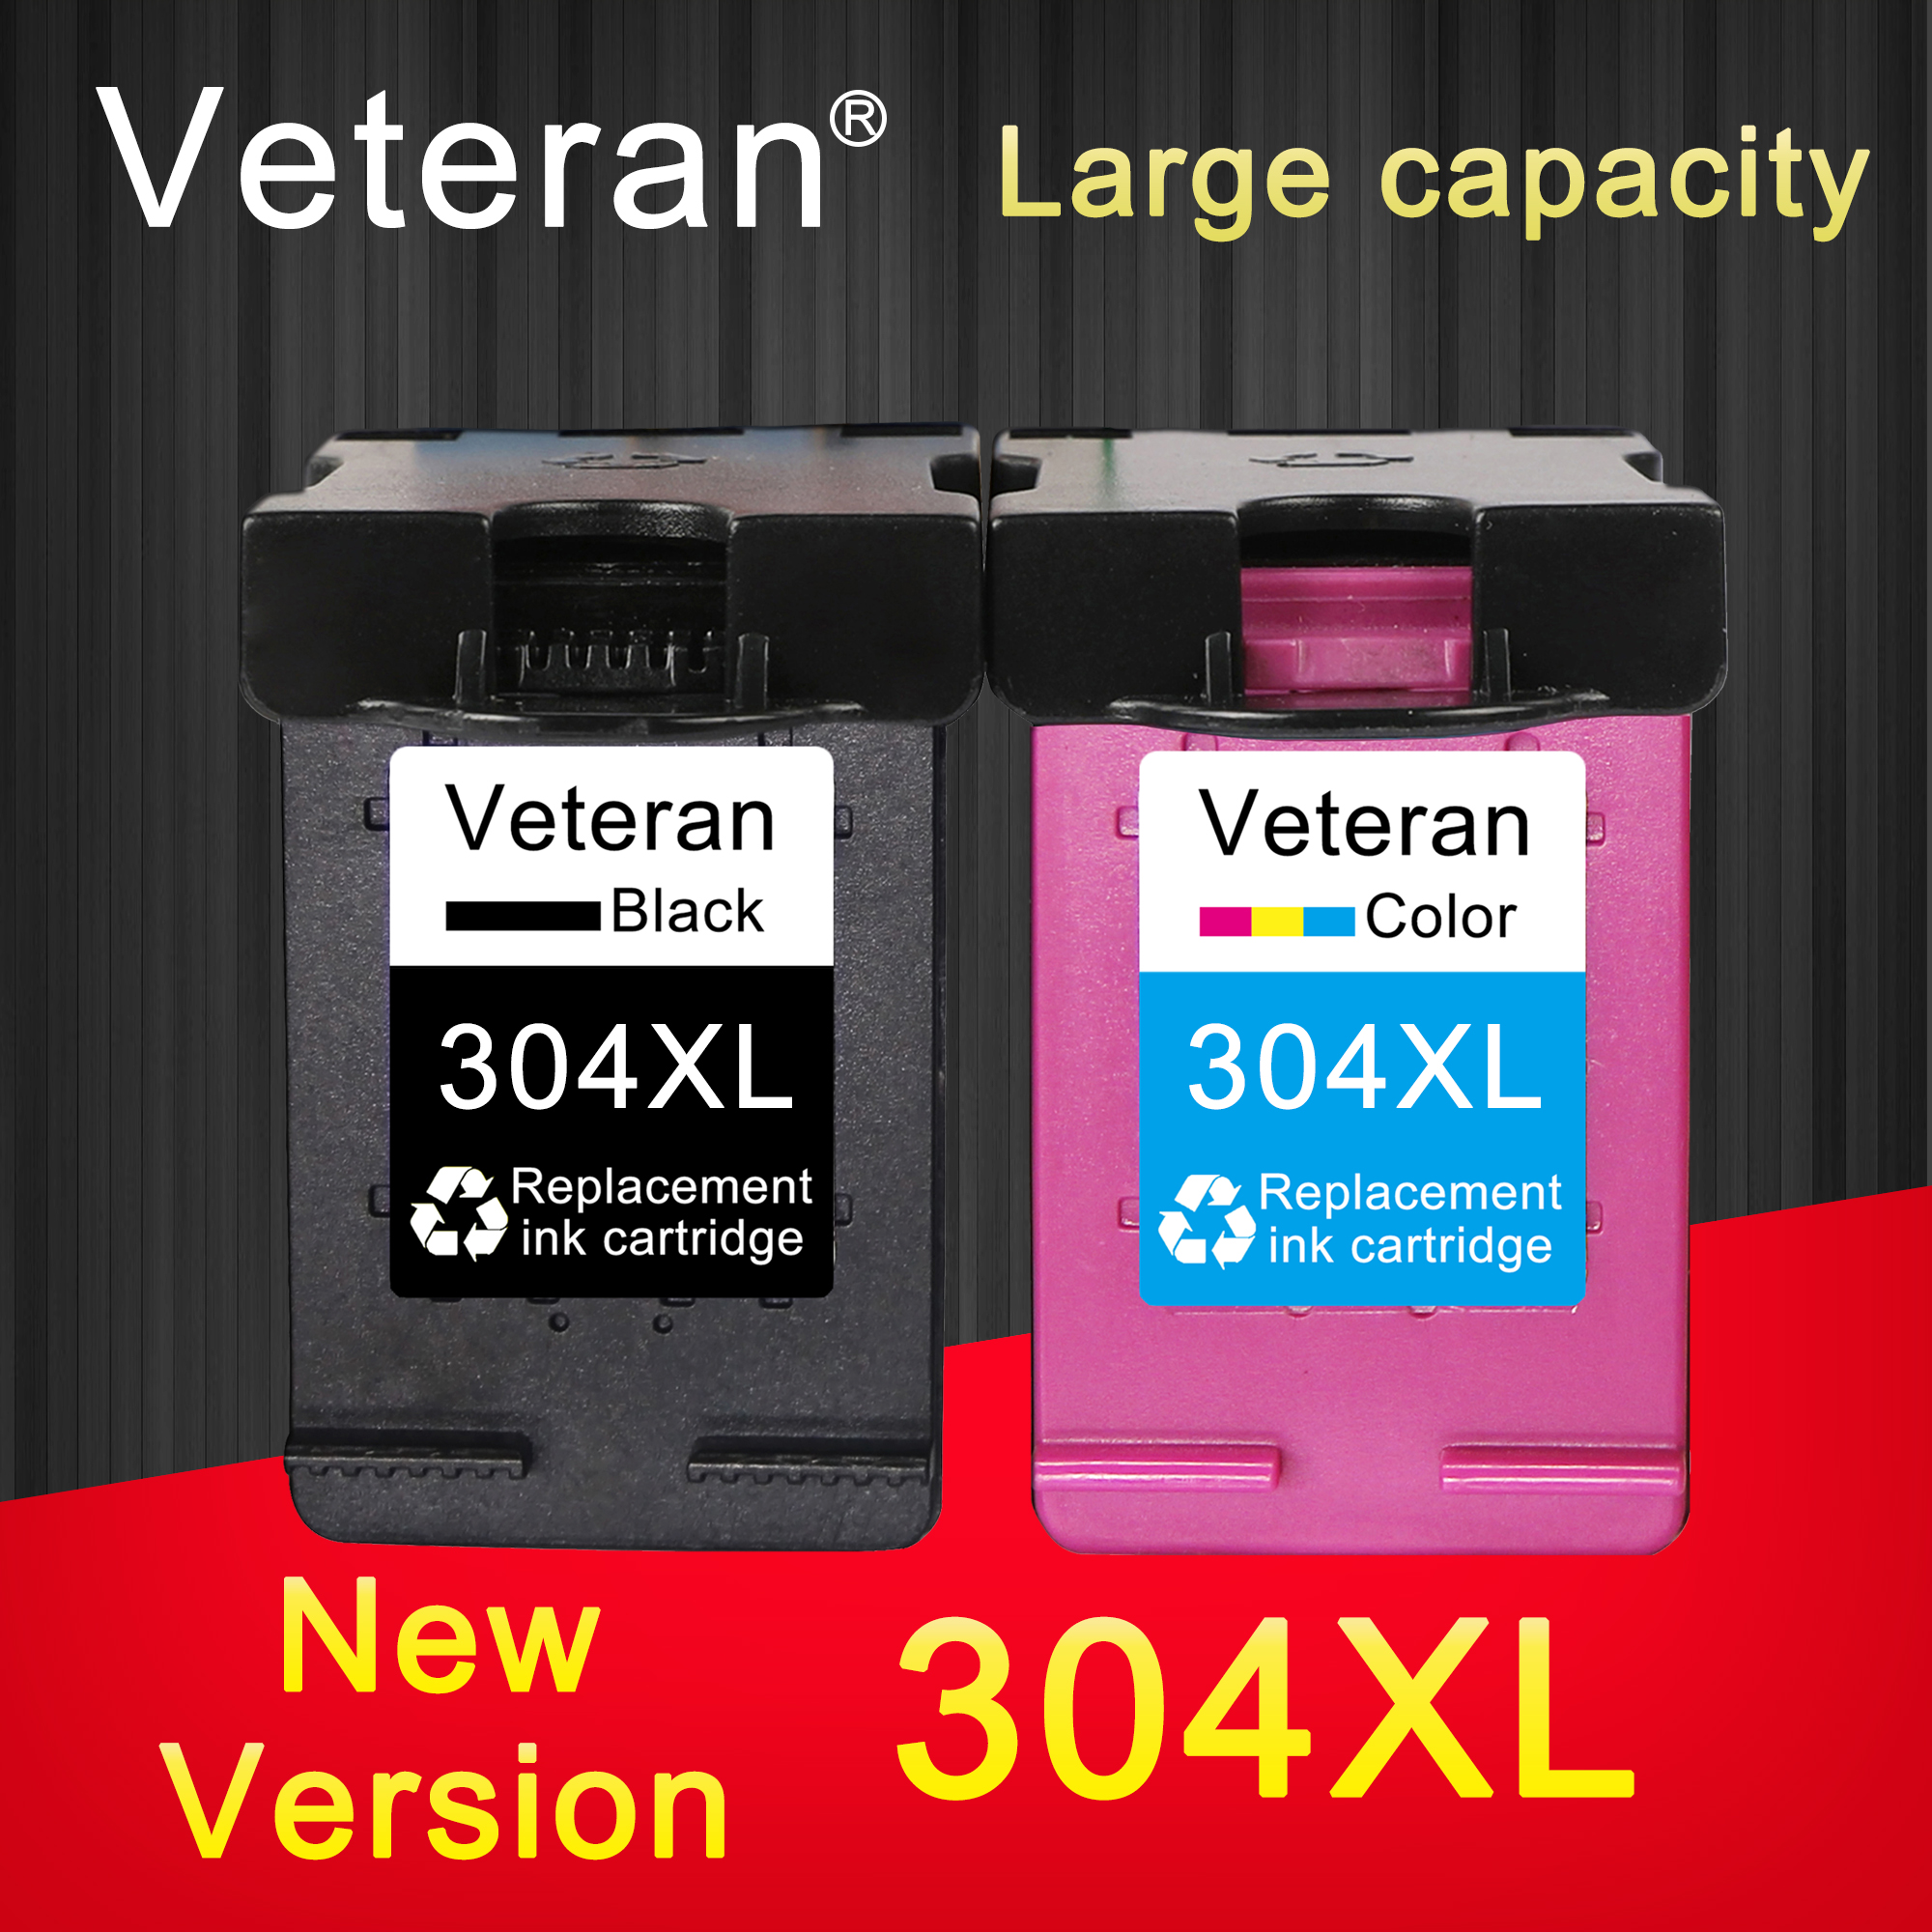 Veteran Ink-Cartridge Printer 5030 3730 2620 304XL Hp304 Envy 3720 5020 5032 2632 Deskjet title=